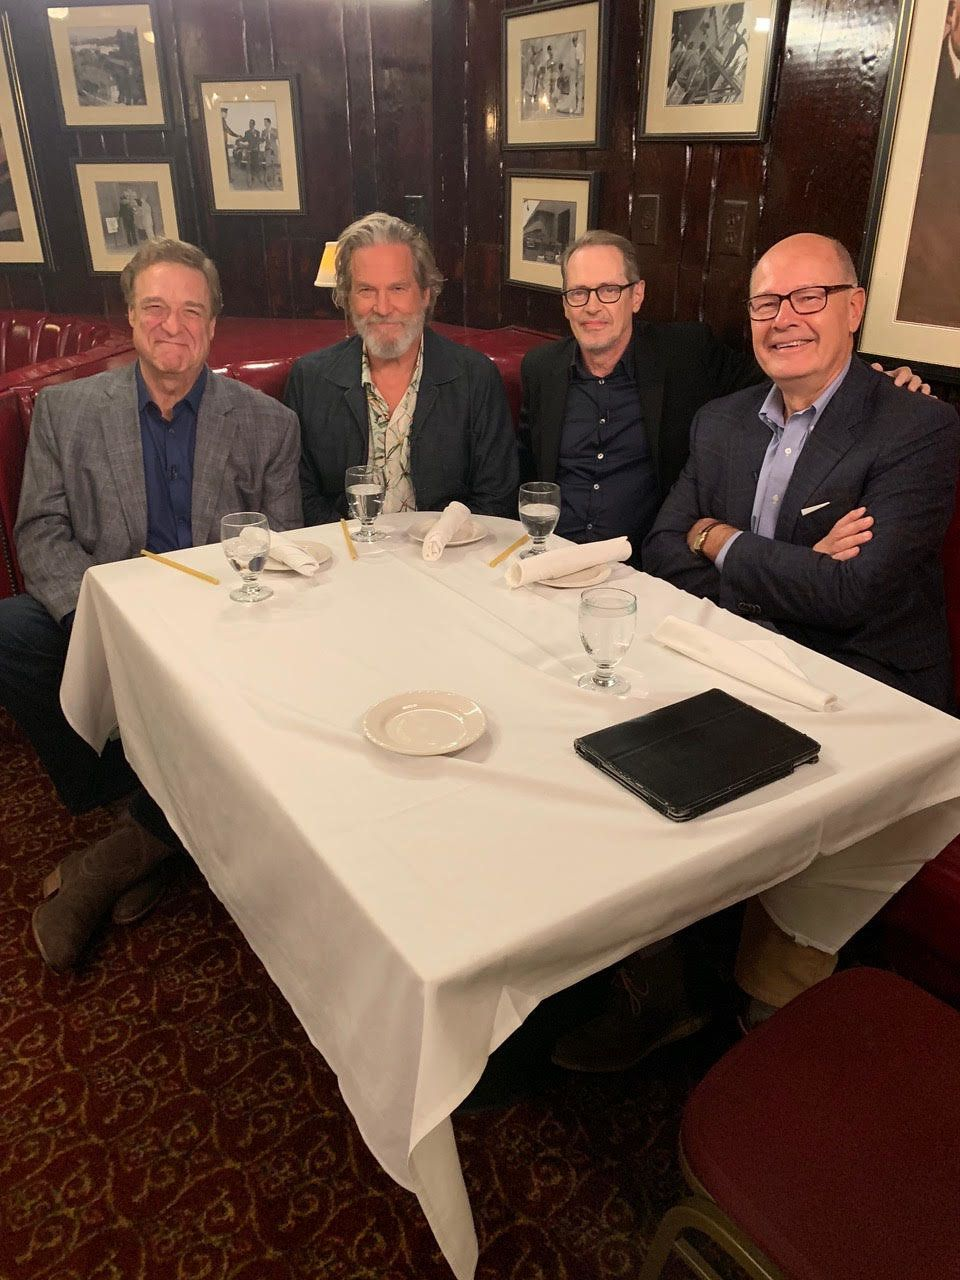 For A 20-Year 'Big Lebowski' Cast Reunion Photo, These Dudes